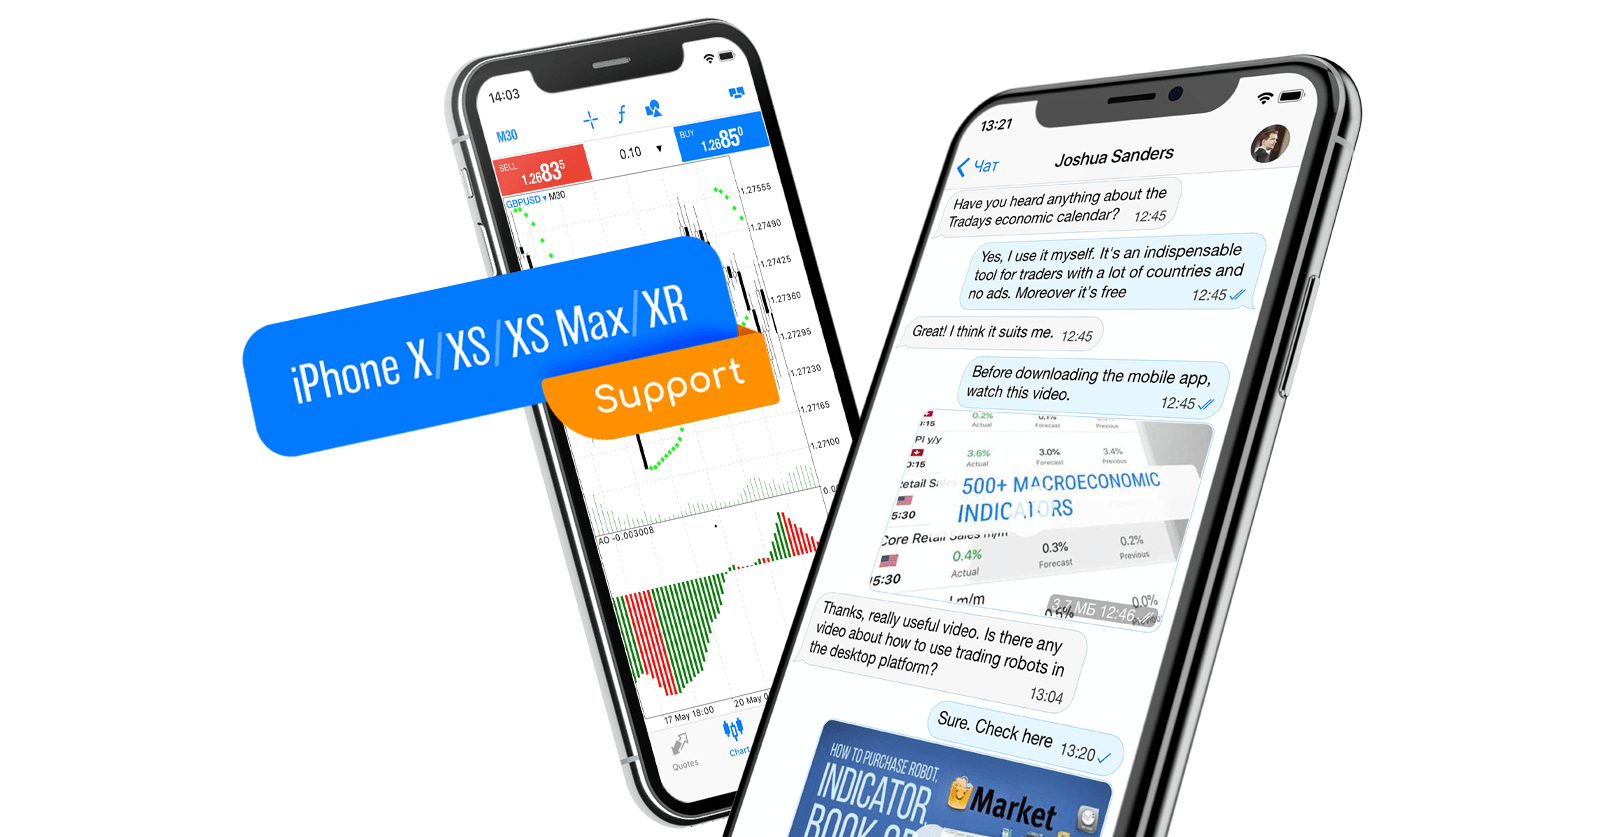 Suporte nativo para o iPhone X/XS/XS Max/XR no MetaTrader 5 iOS